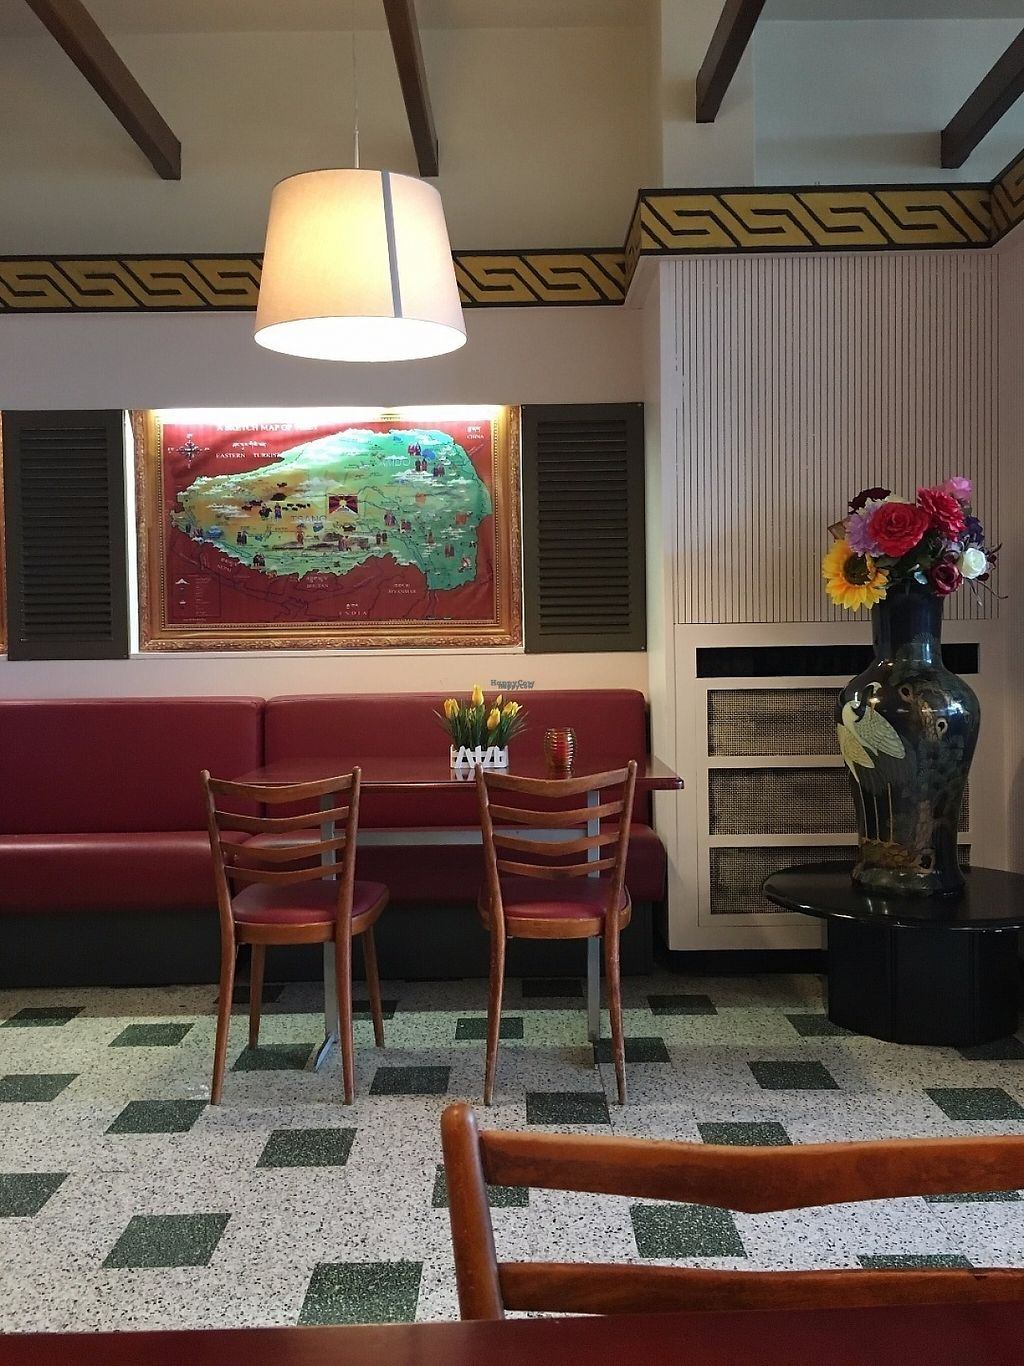 """Photo of Sneeuw Tearoom  by <a href=""""/members/profile/VeggieGastronaut"""">VeggieGastronaut</a> <br/>Indoor room  <br/> November 16, 2016  - <a href='/contact/abuse/image/65979/190957'>Report</a>"""